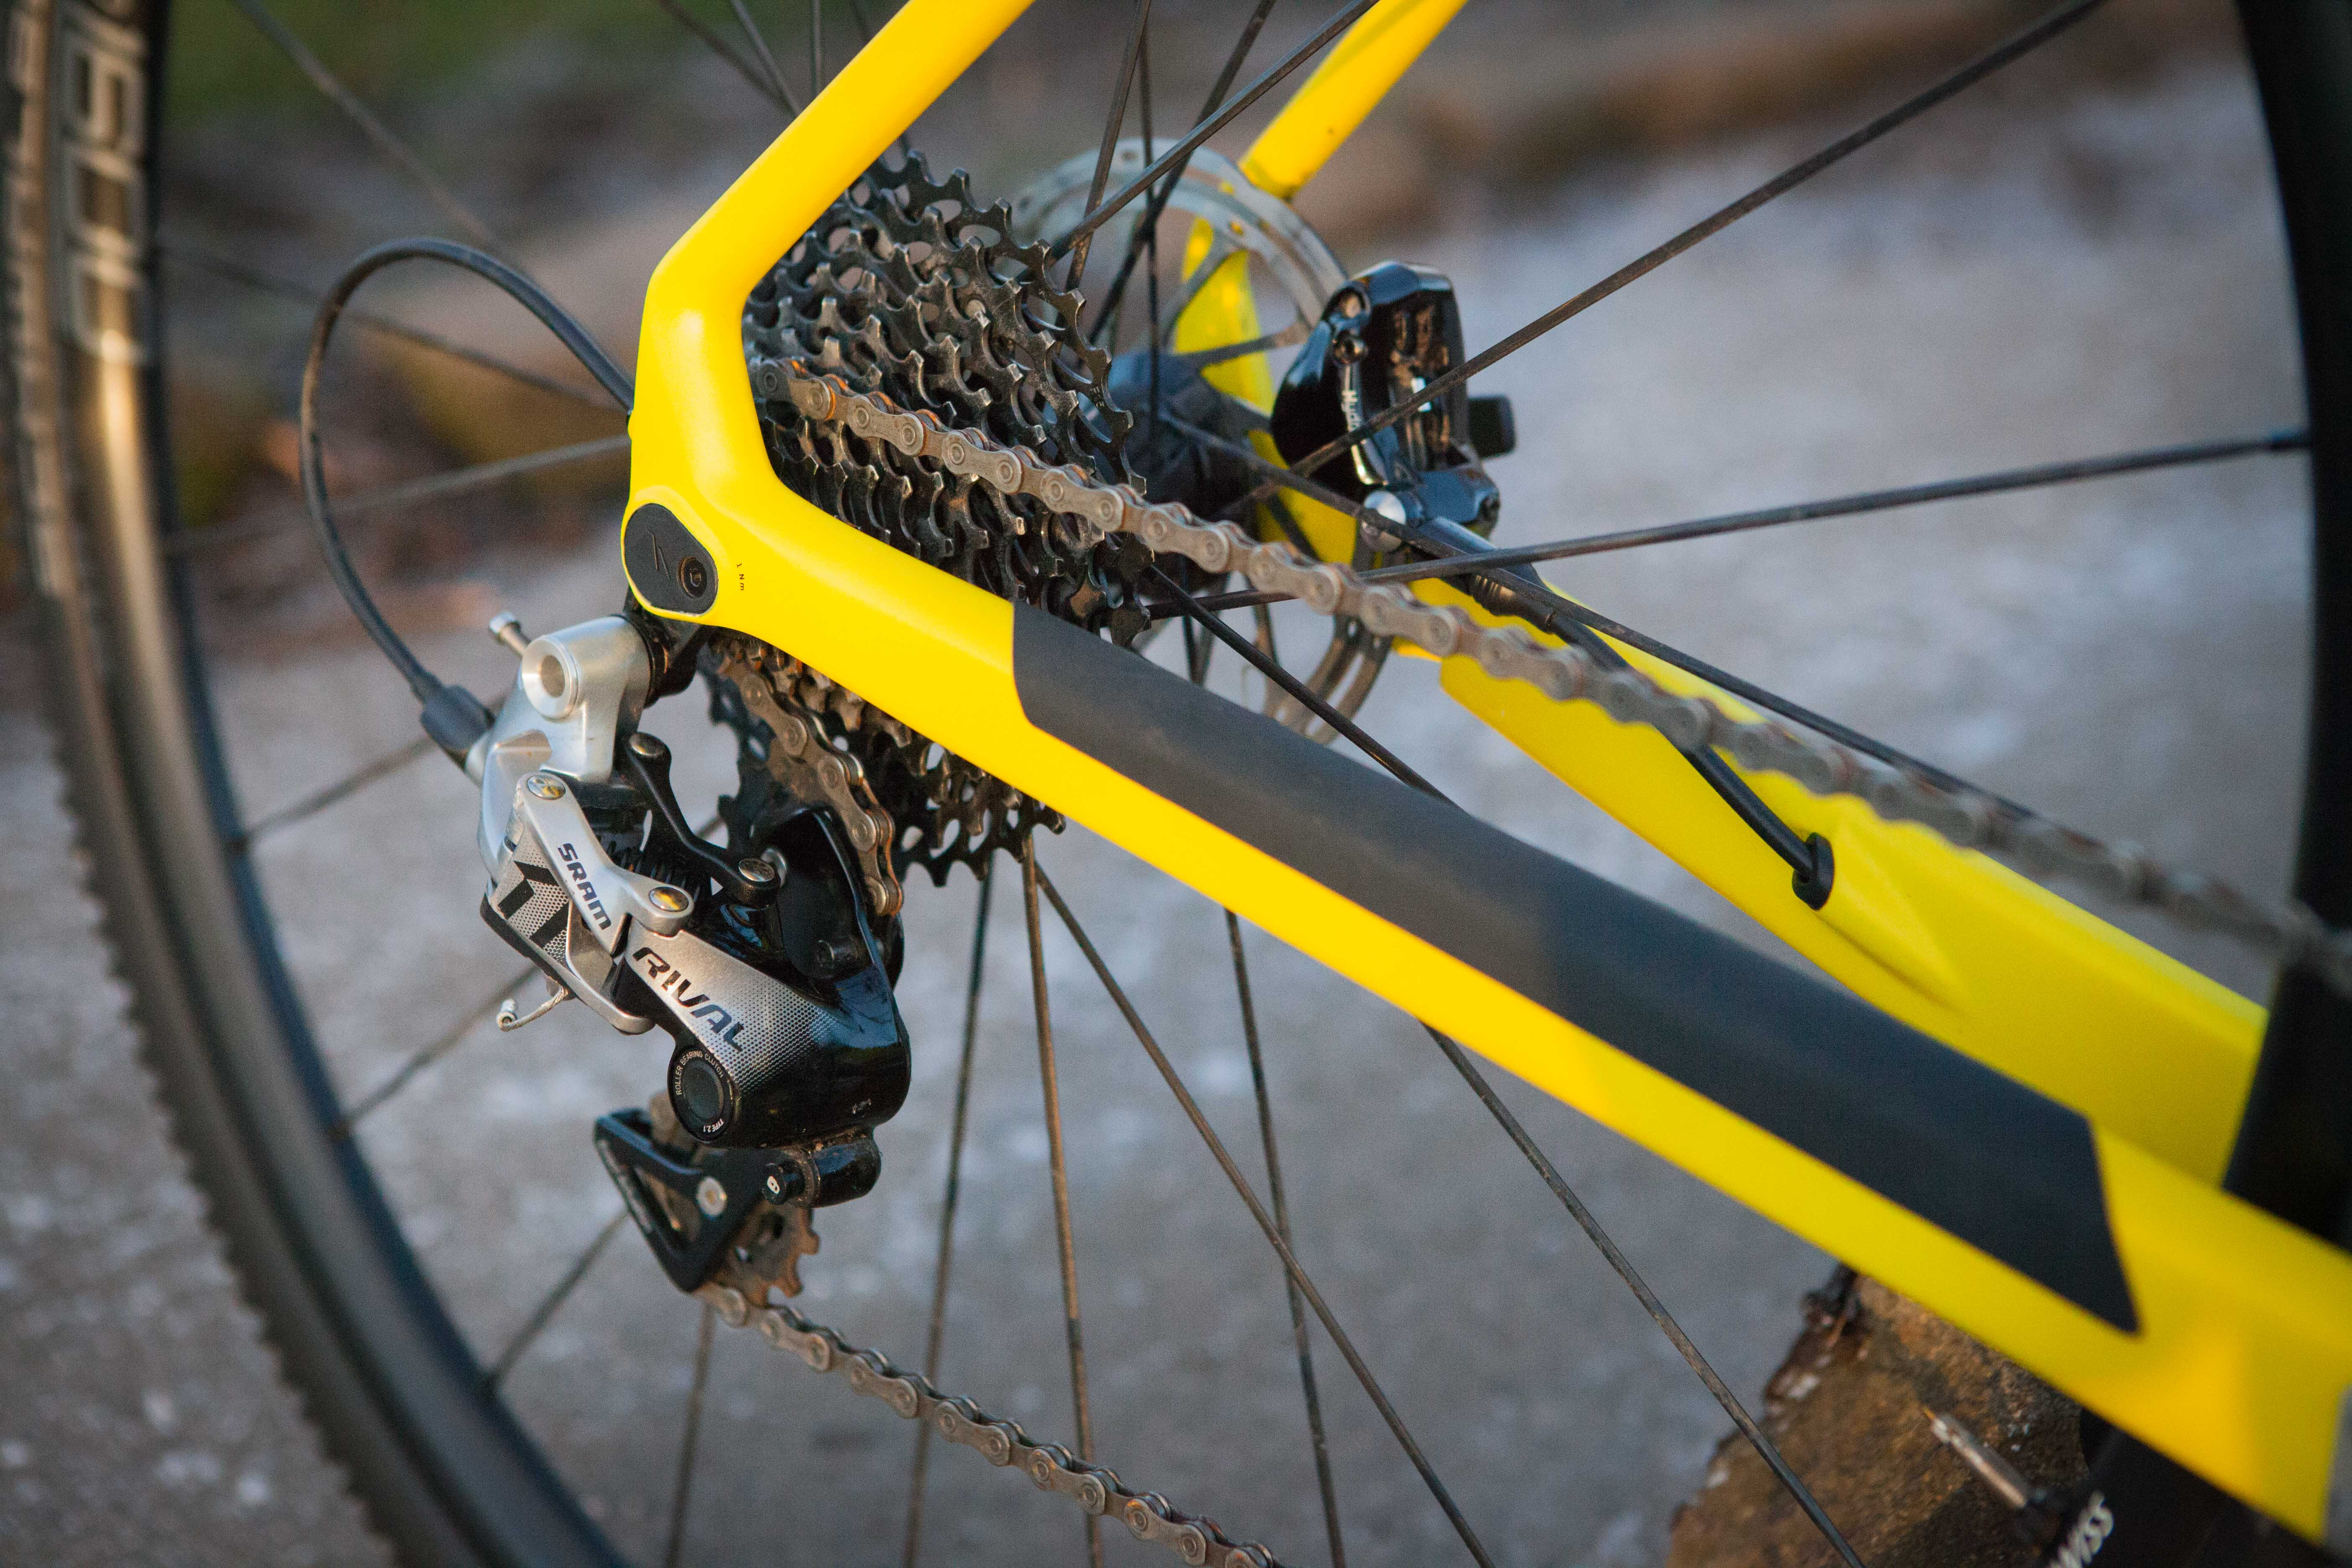 Reviewed: Canyon Inflite CF SLX 8 0 Pro Race - GritCX